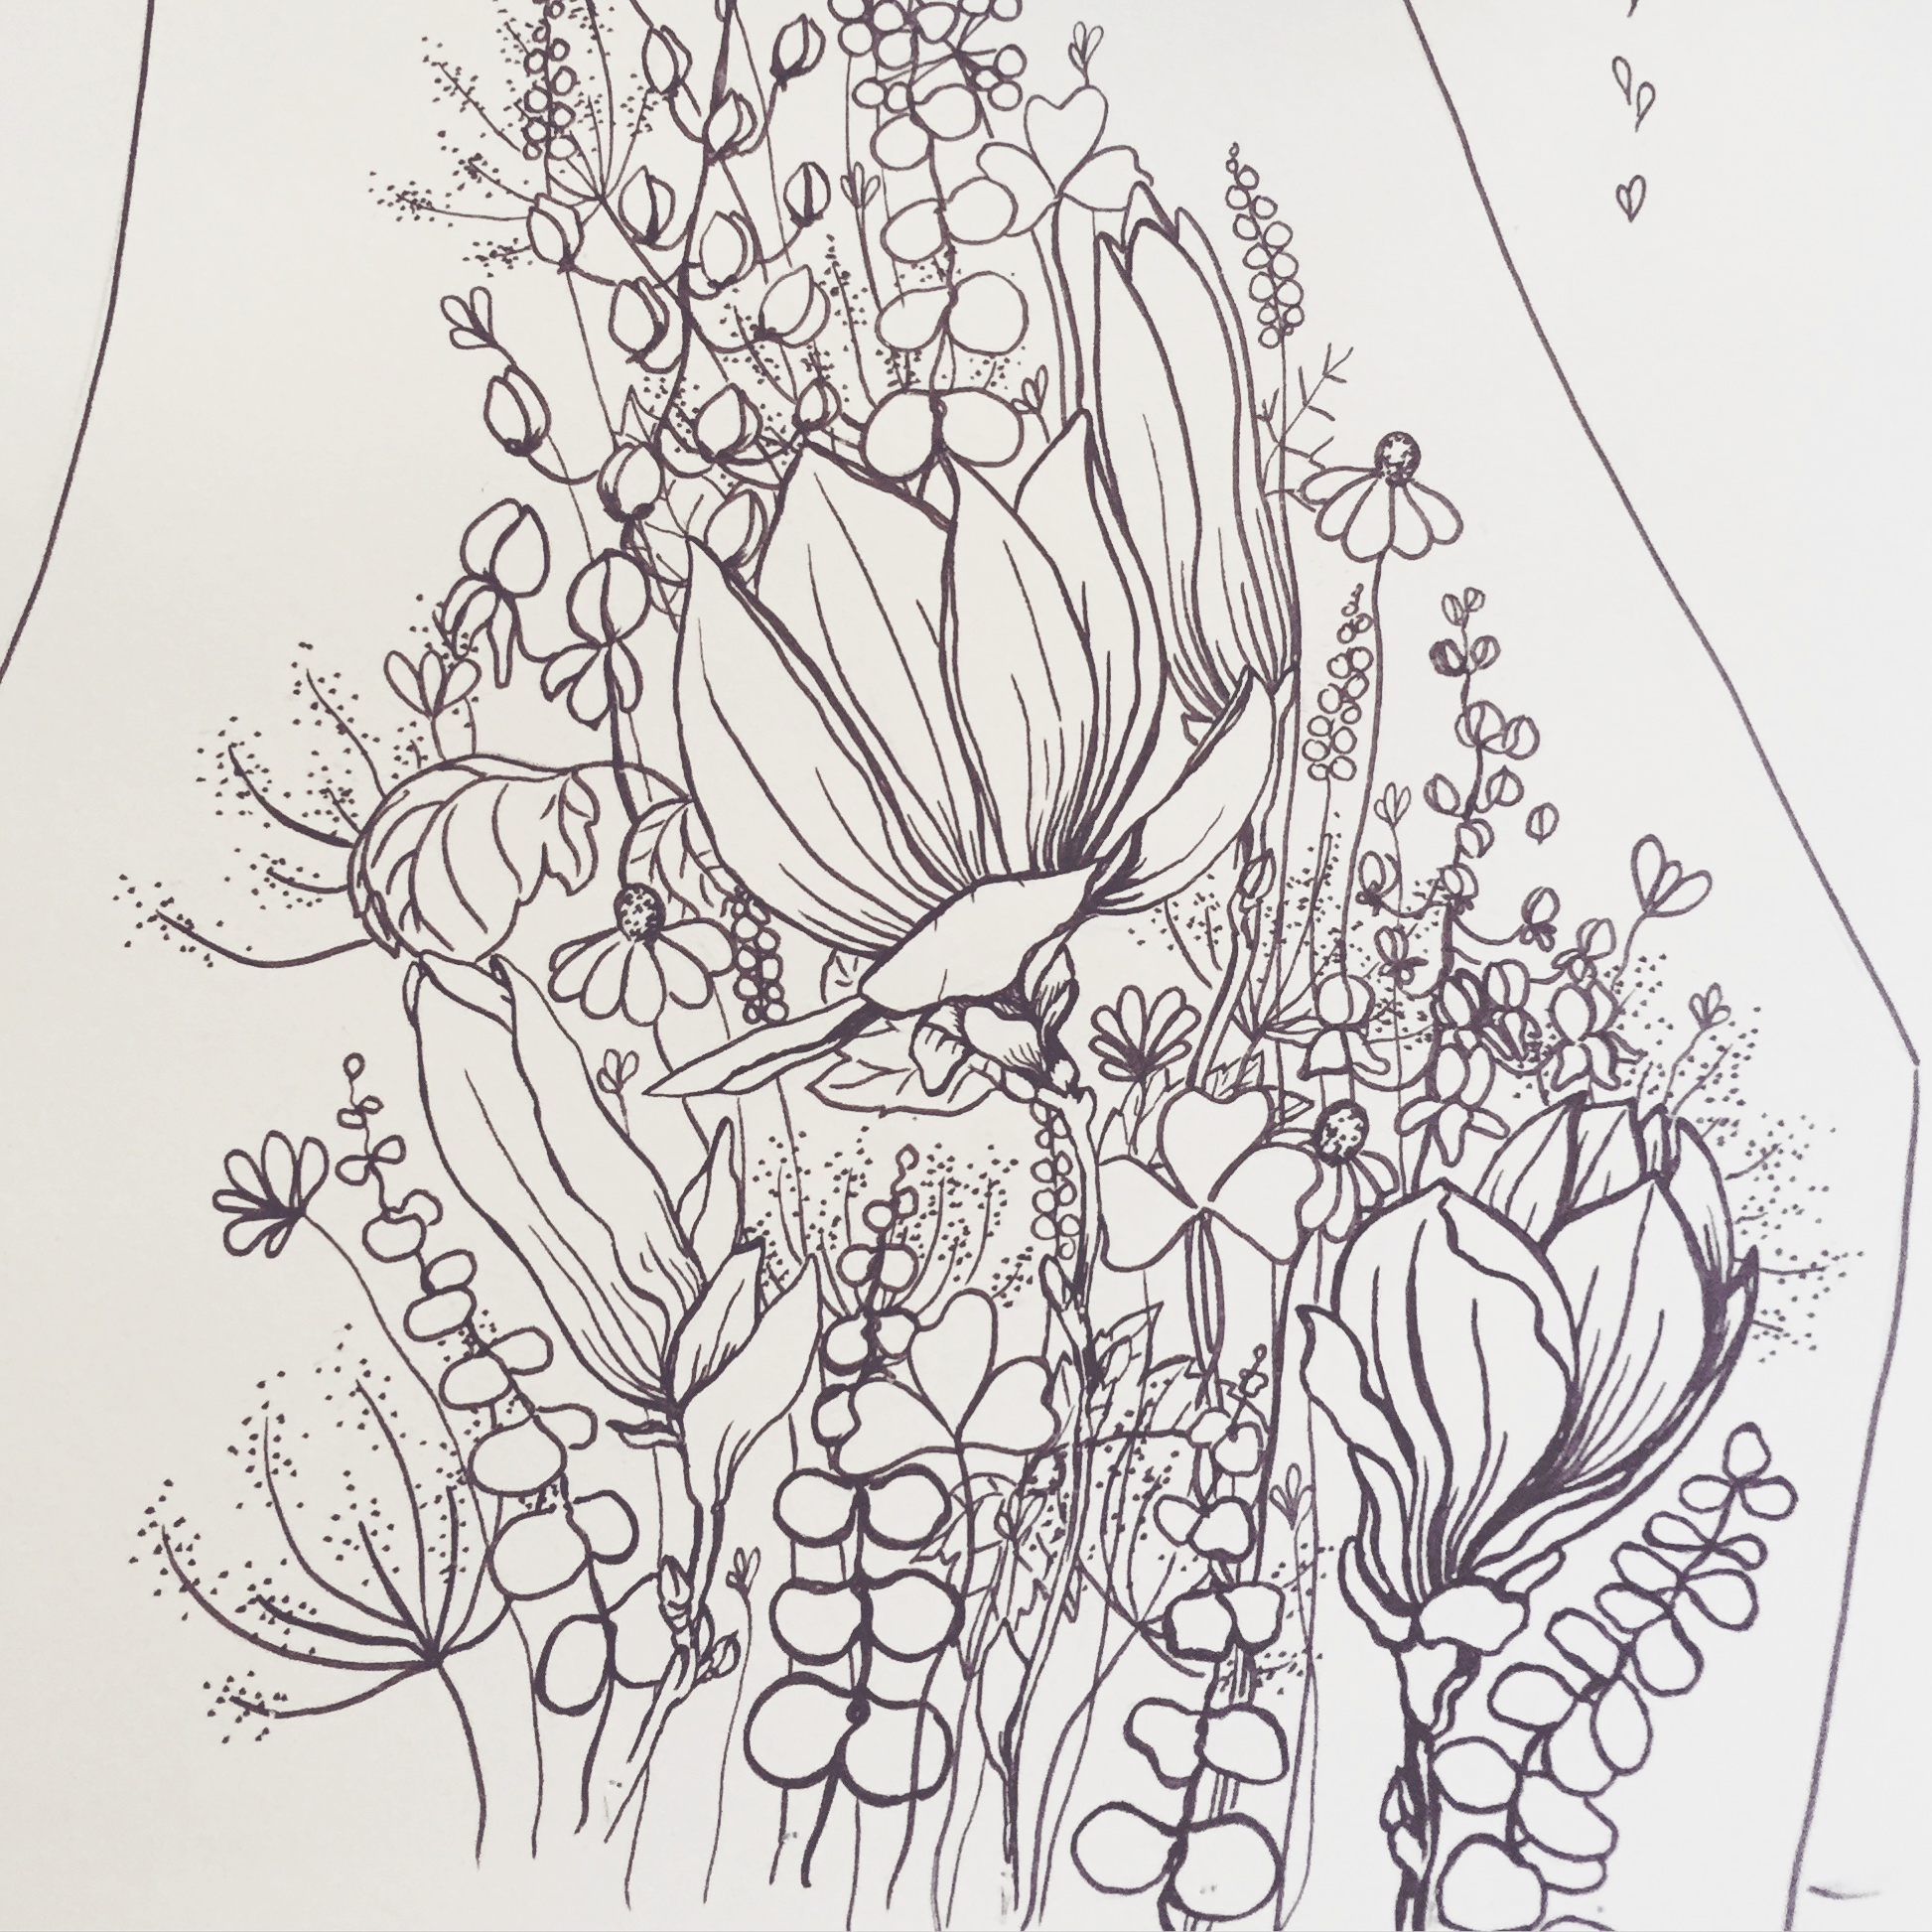 The custom illustration to fit within the garment pattern piece. Designed to be mirrored with the front and the back being different designs.